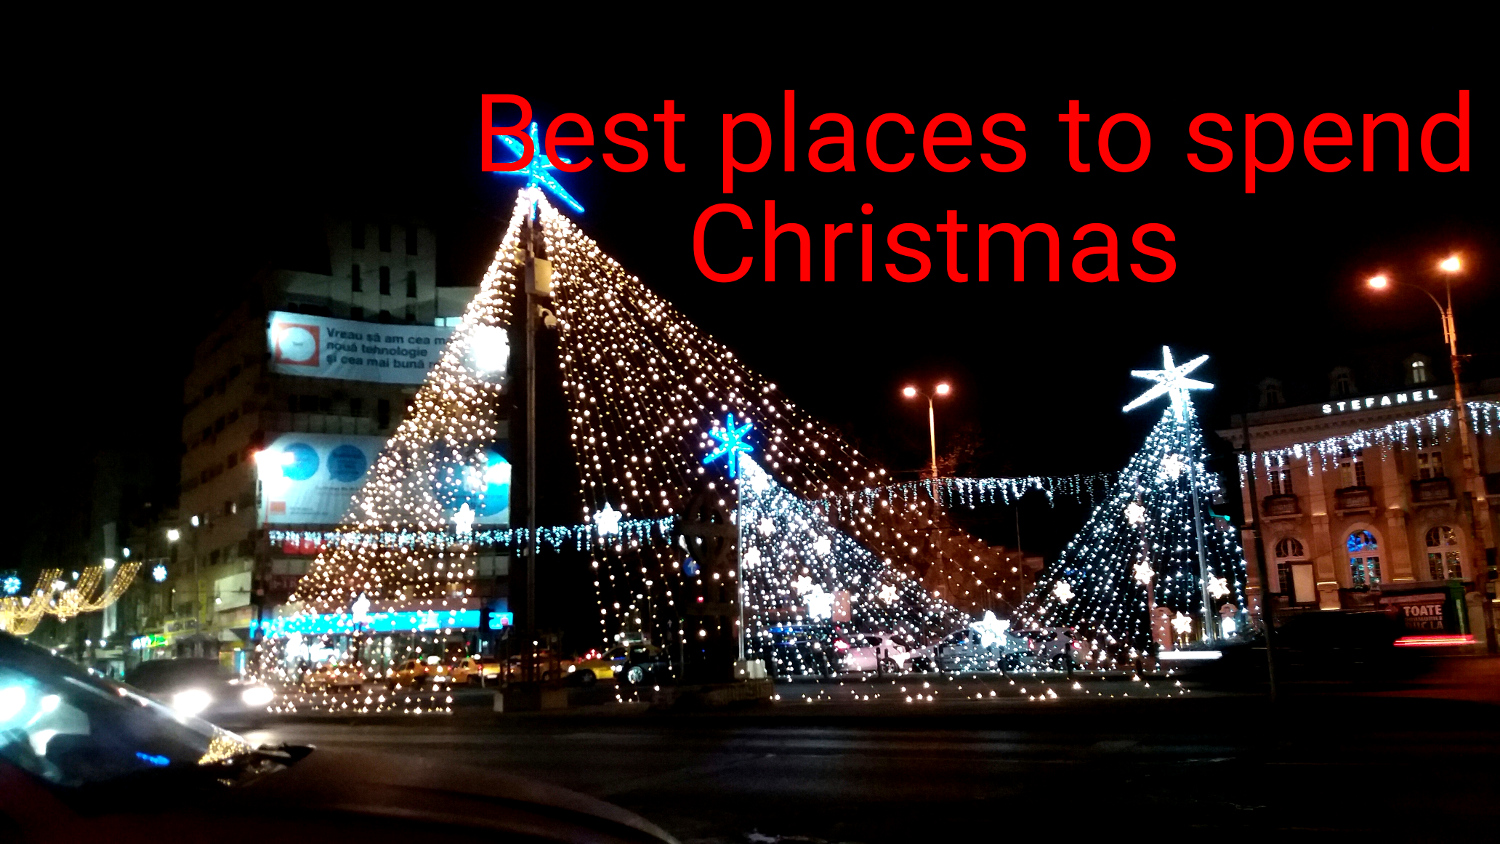 Best Christmas destinations in the world as recommended by travel bloggers